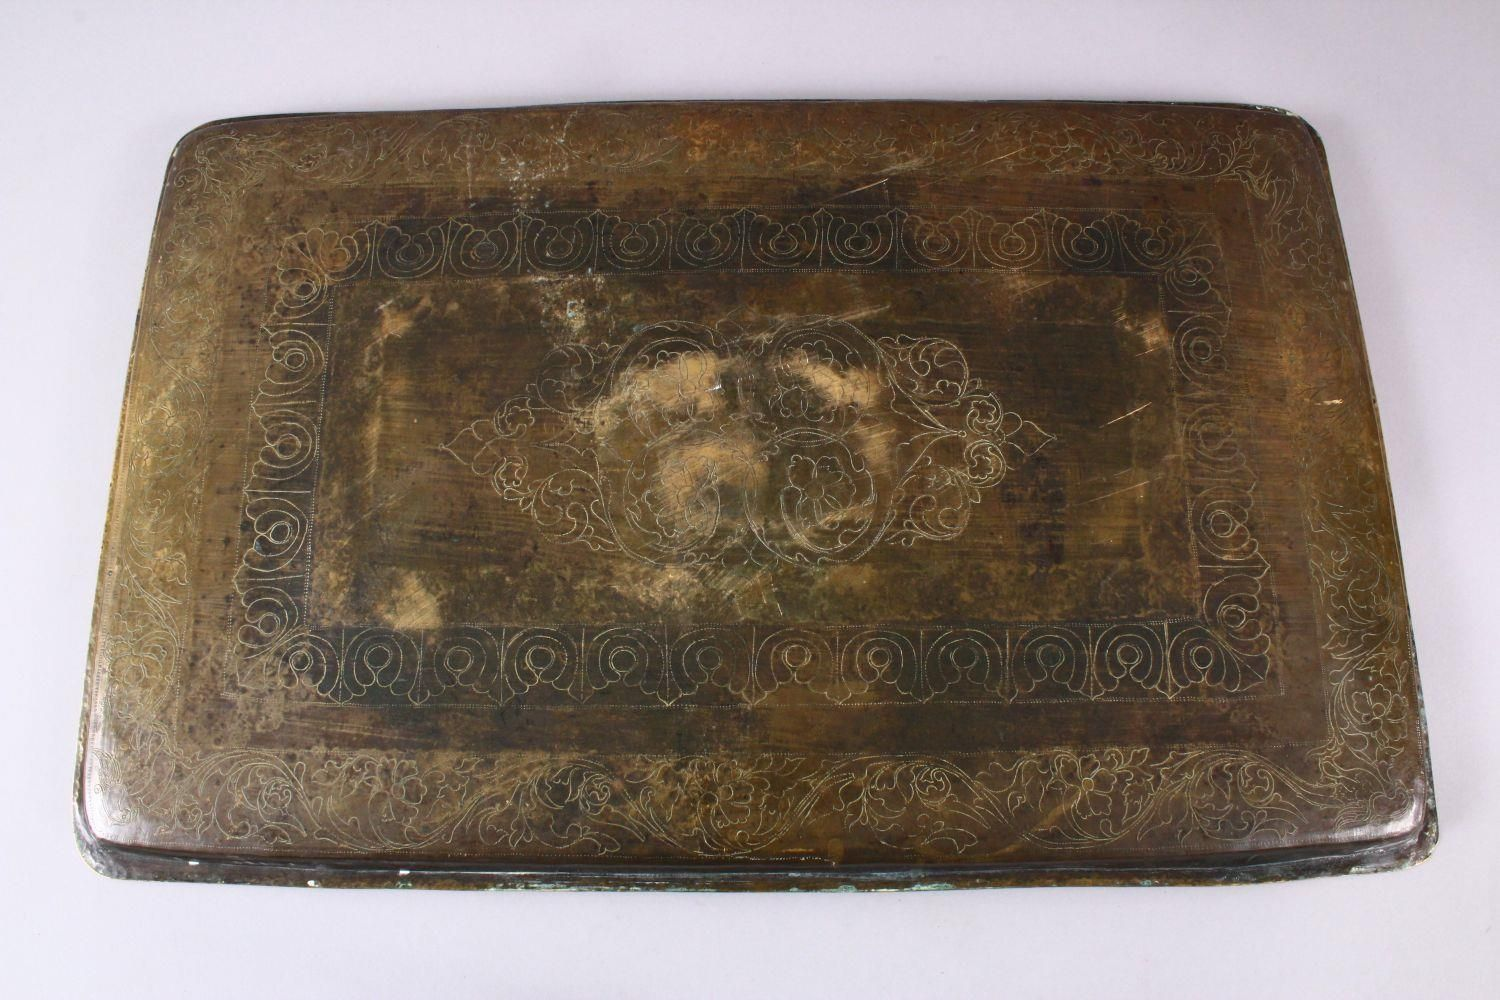 A LARGE EARLY 19TH CENTURY SOUTH INDIAN TANJORE SILVER AND COPPER INLAID RECTANGULAR TRAY, 59cm x - Image 5 of 5